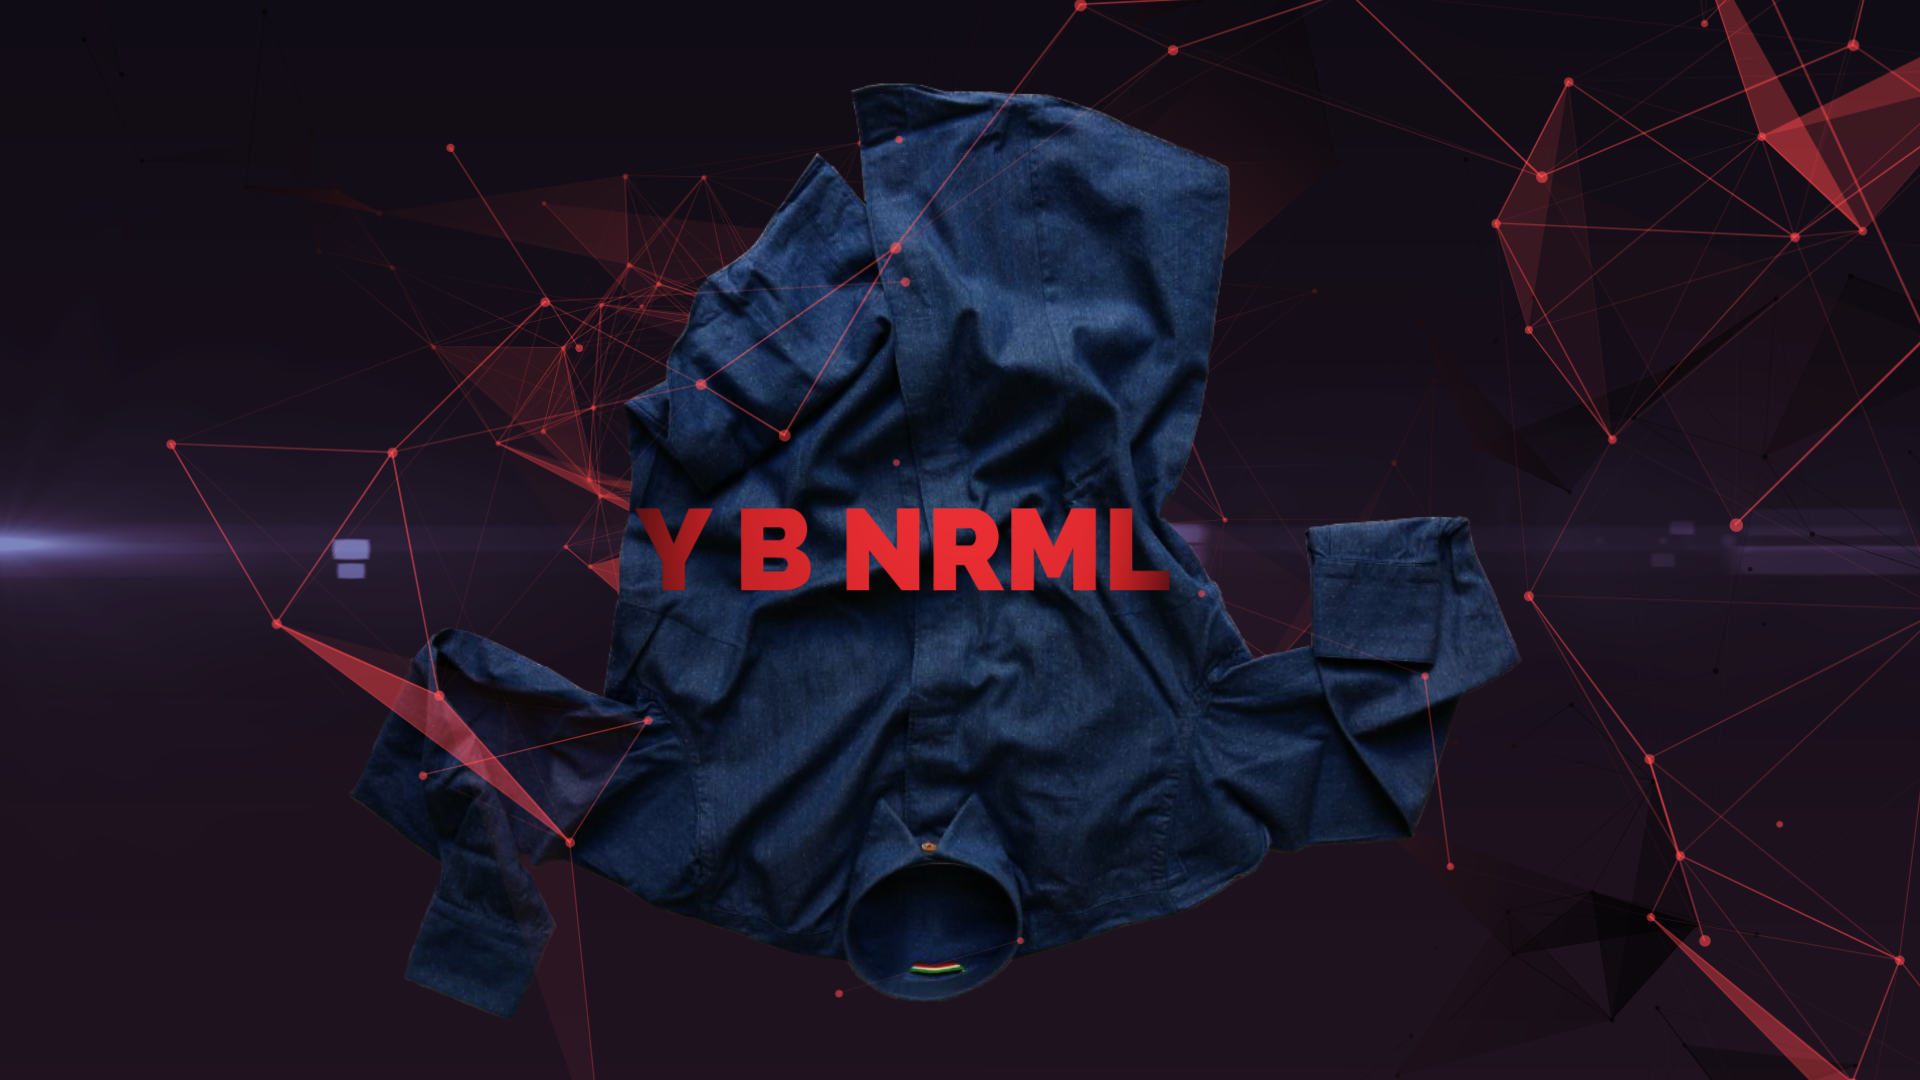 Y B NRML - NOT A NORMAL SHIRT